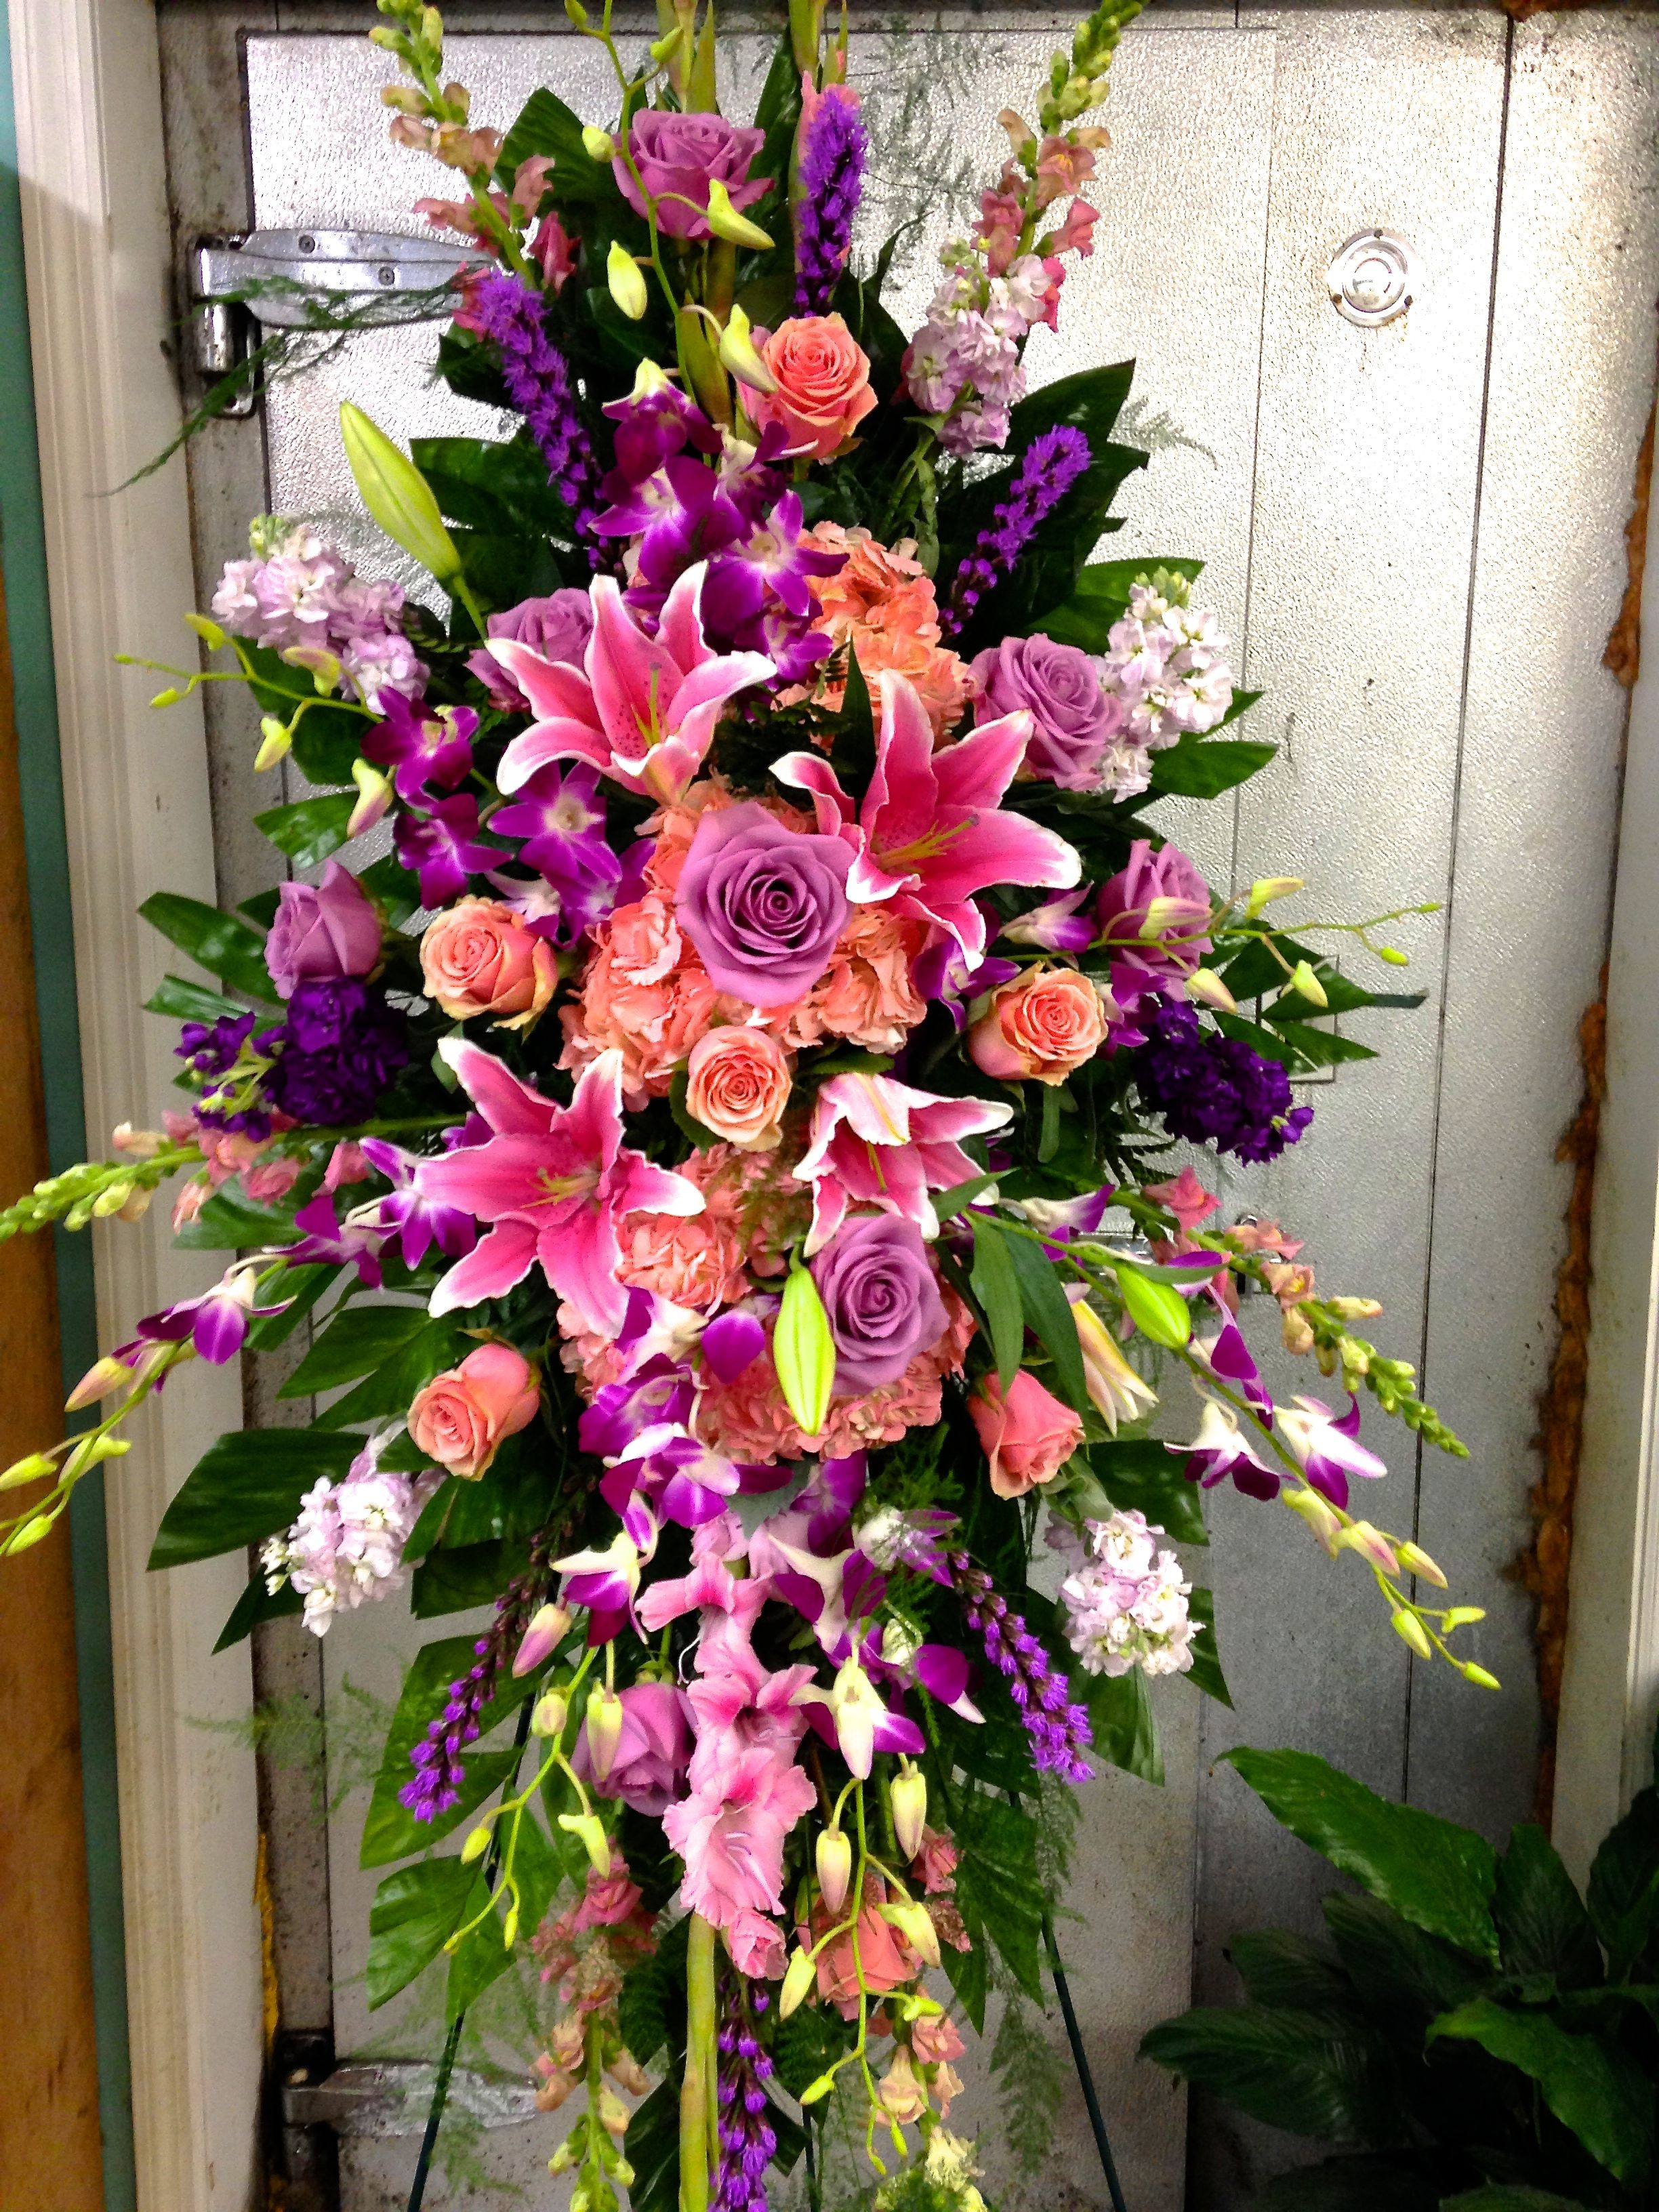 Funeral Standing Spray with pinks and violets focal